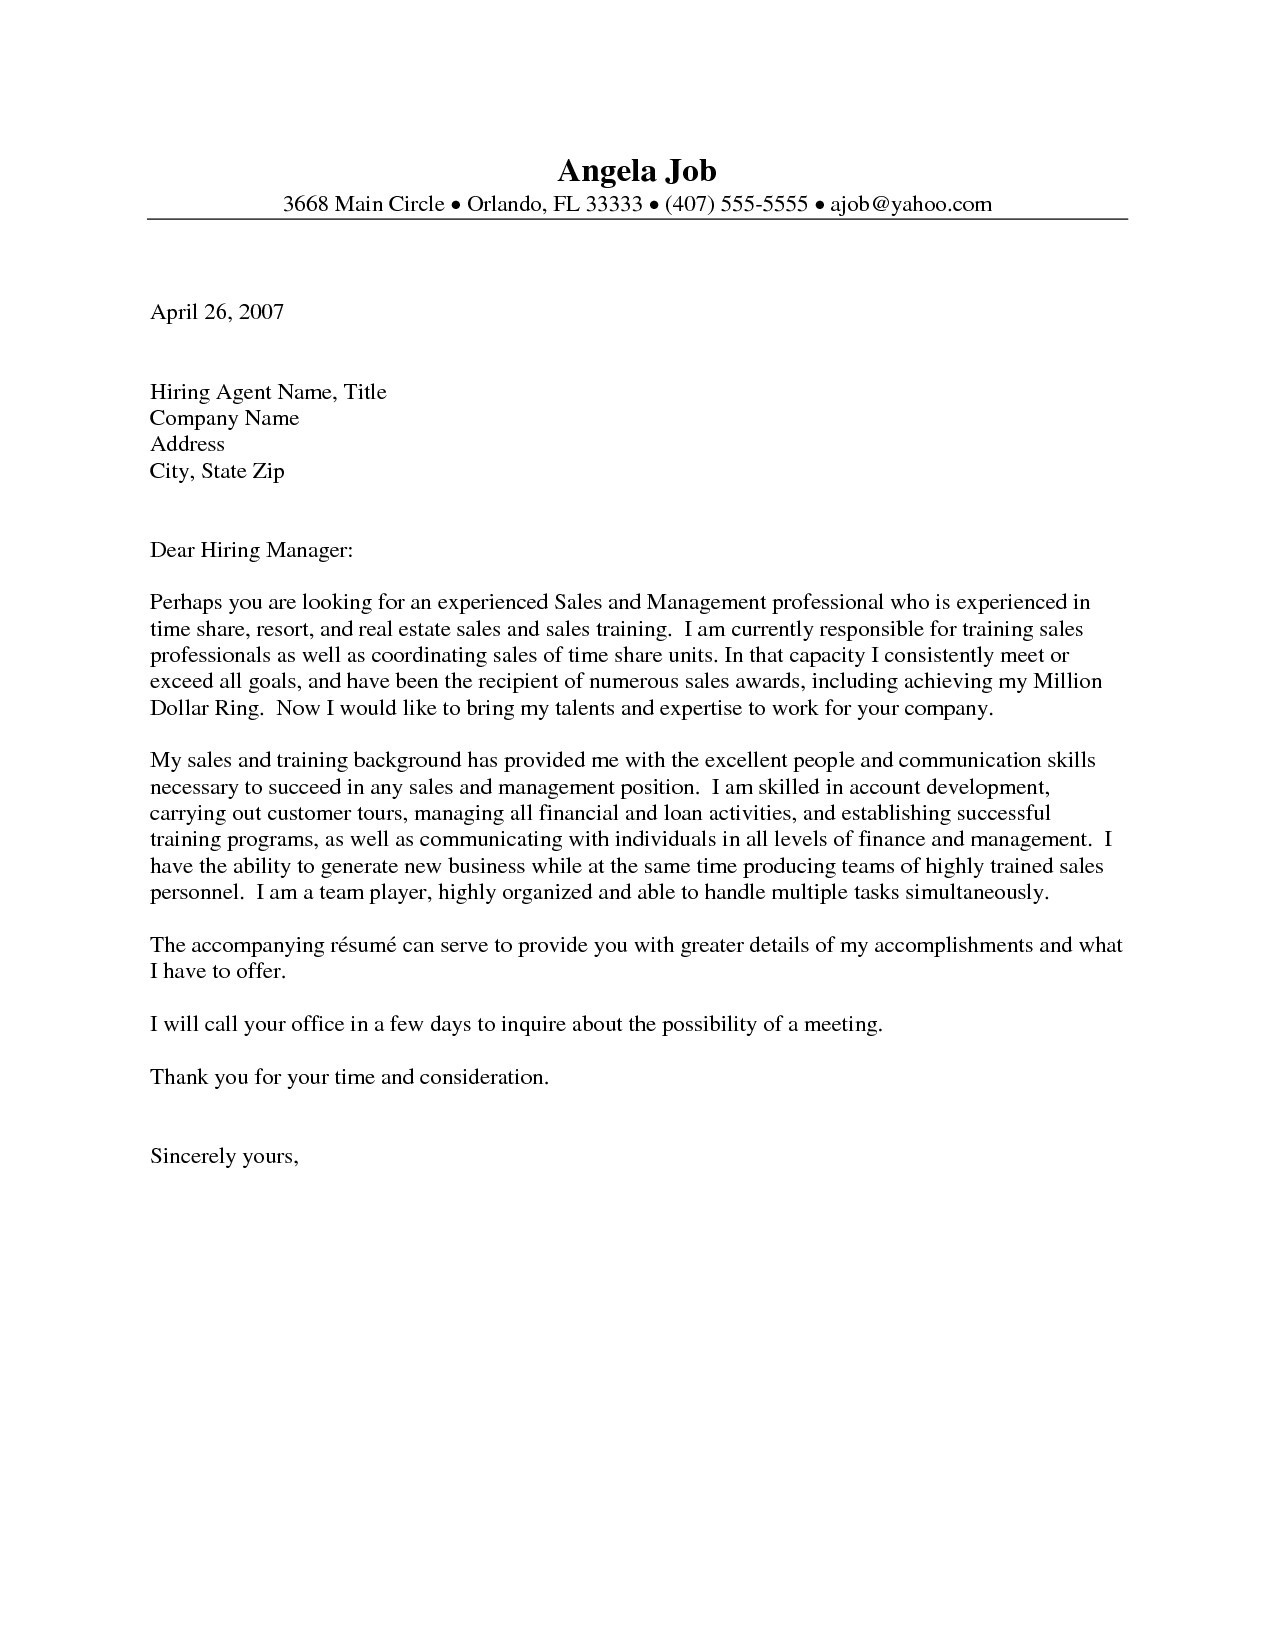 Real Estate Offer Letter Template Free - Awesome Real Estate Fer Letter Template